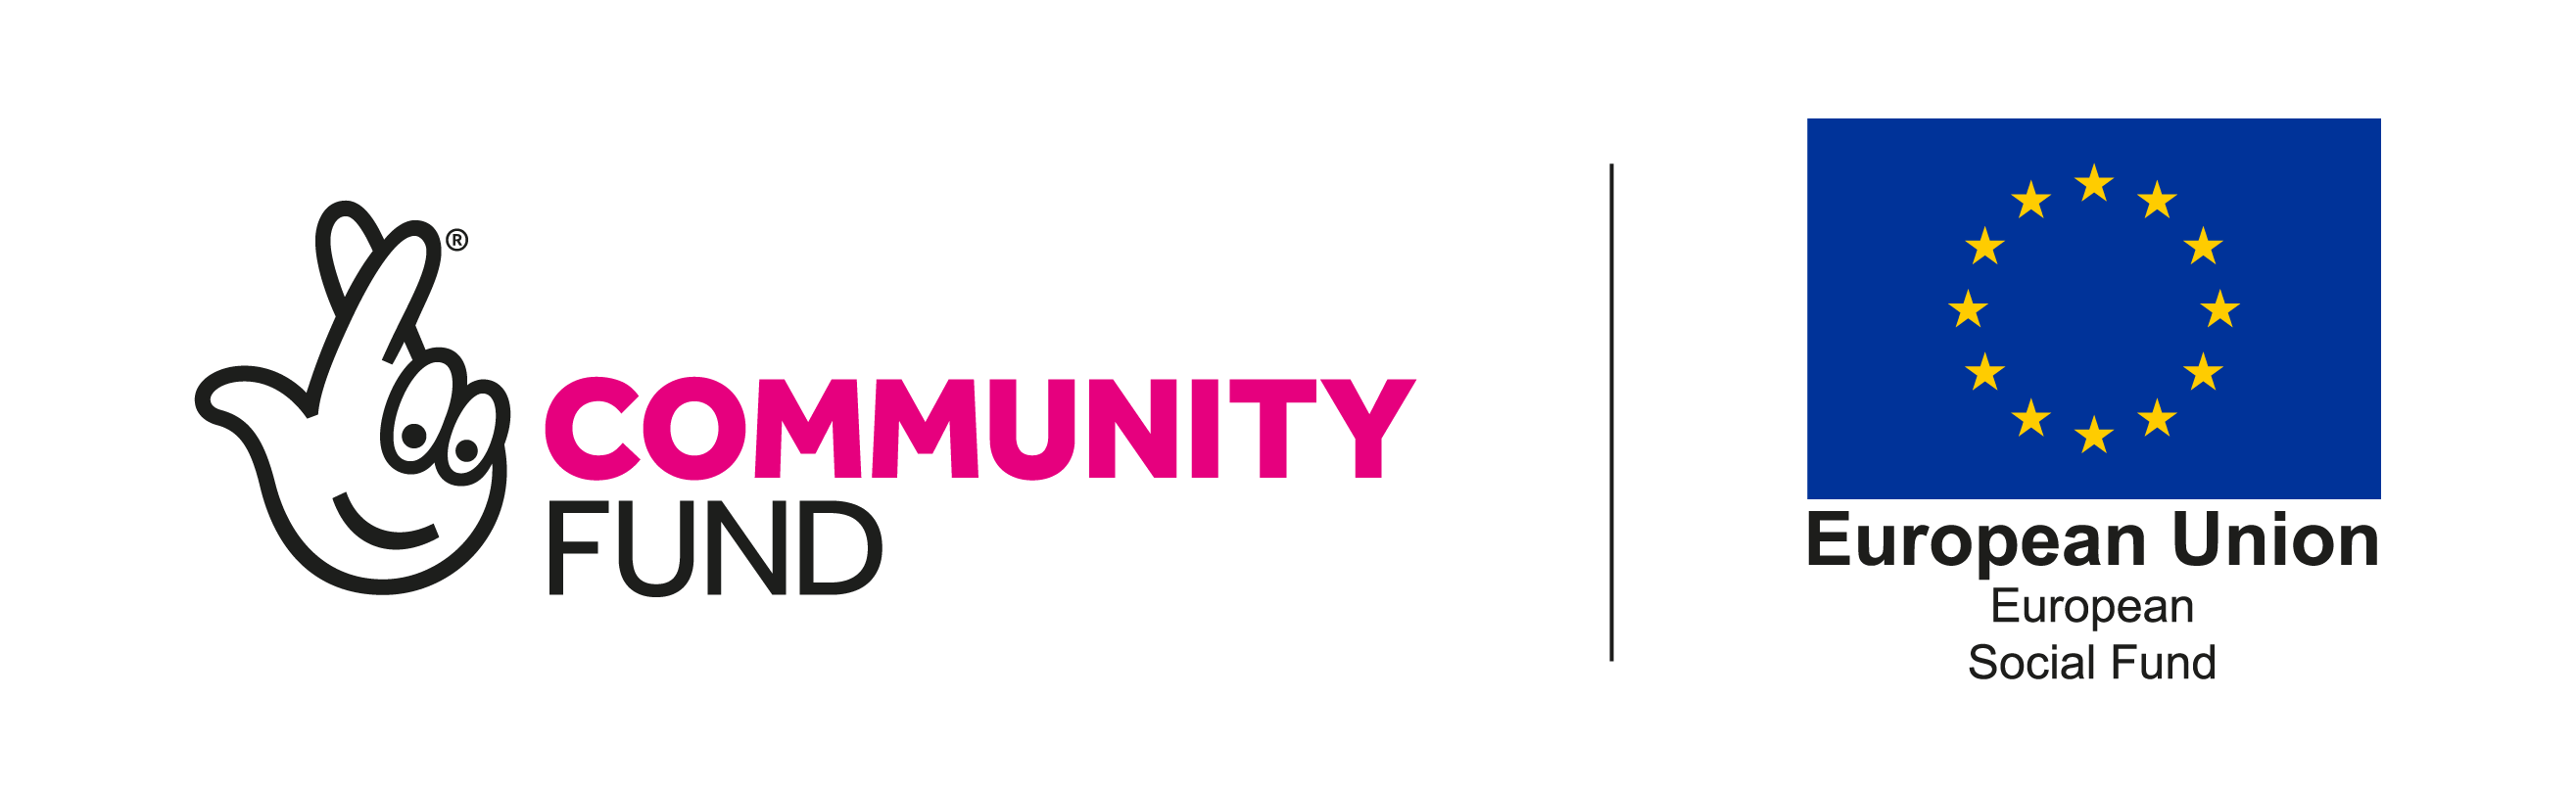 Logo for National Lottery Community Fund and European Social Fund